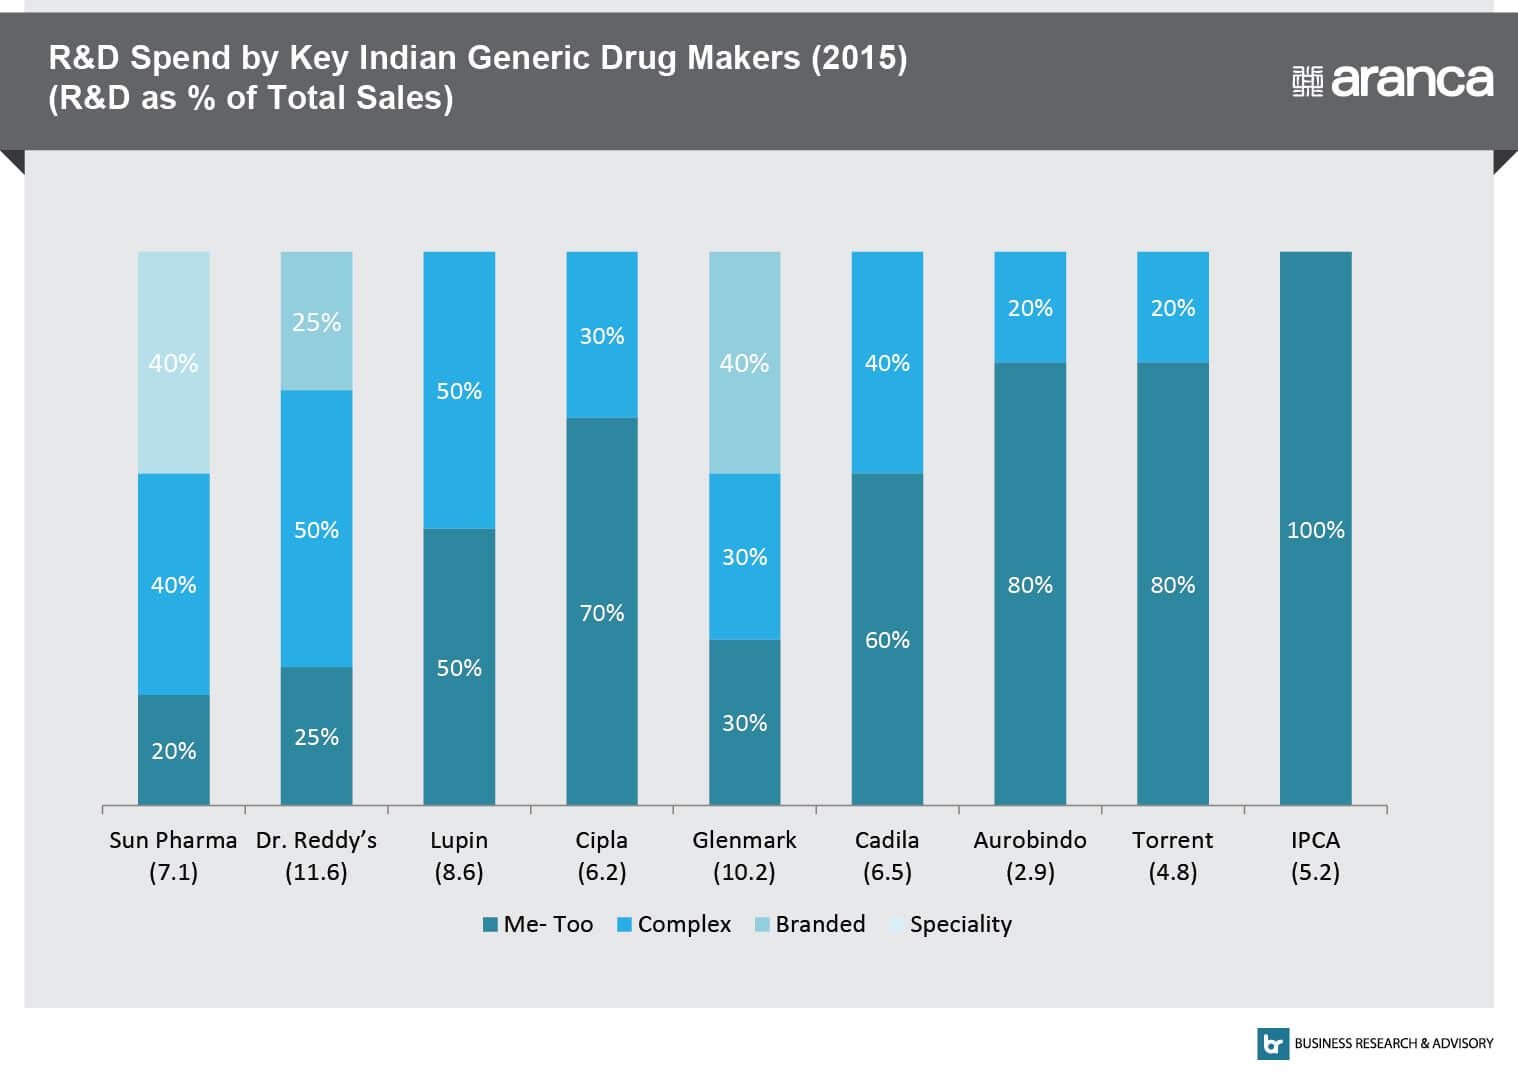 R&D Spends by Key Indian Generic Drug Makers (2015)